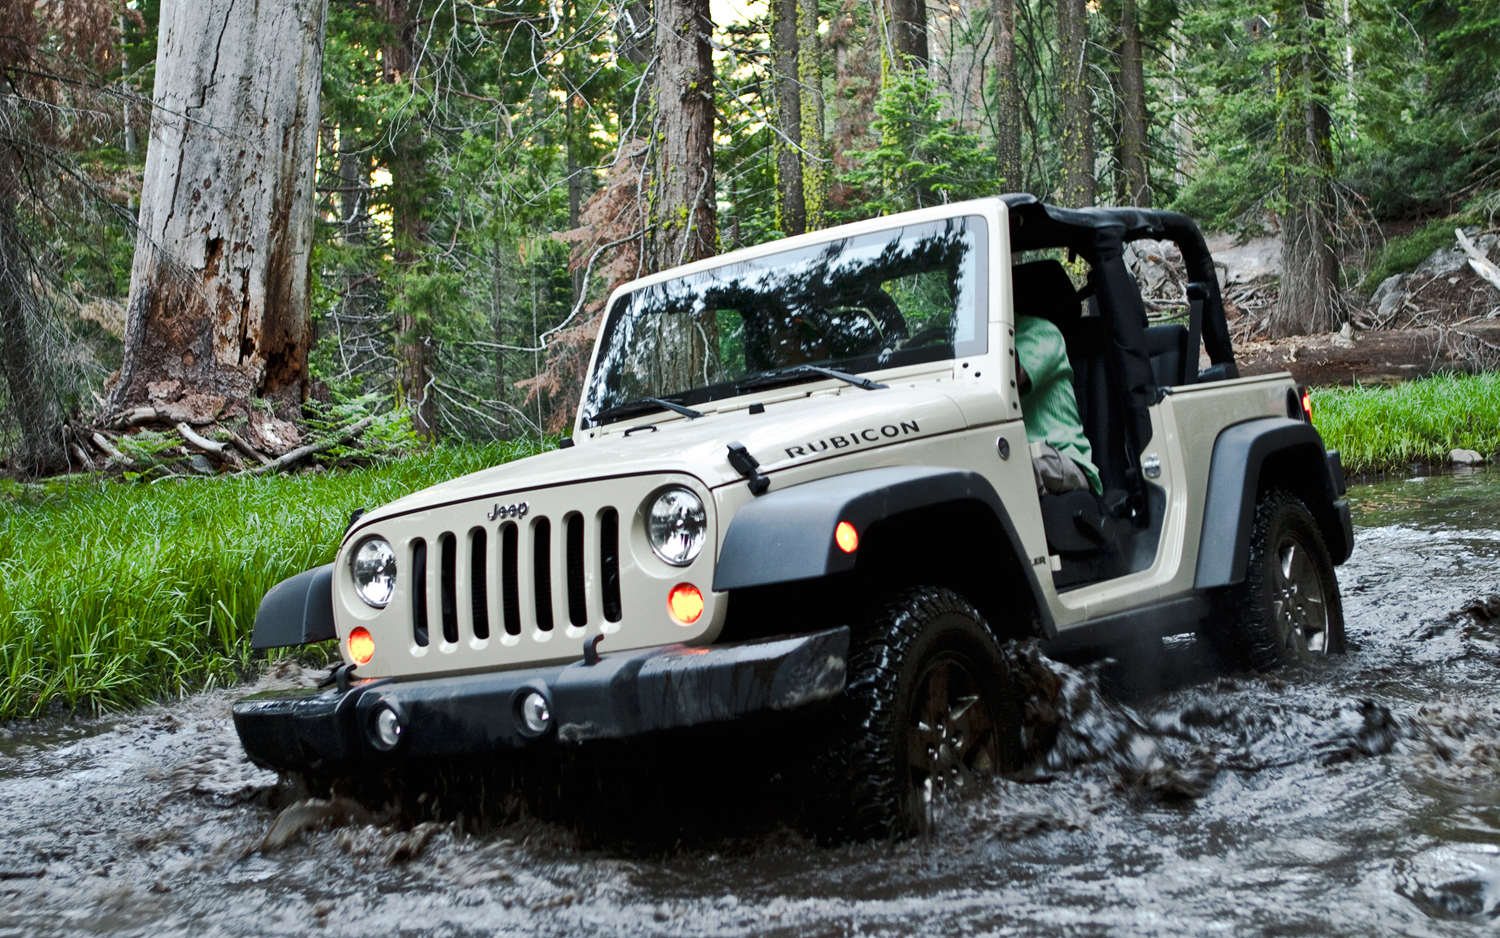 3dtuning Of Jeep Wrangler Rubicon Convertible 2012